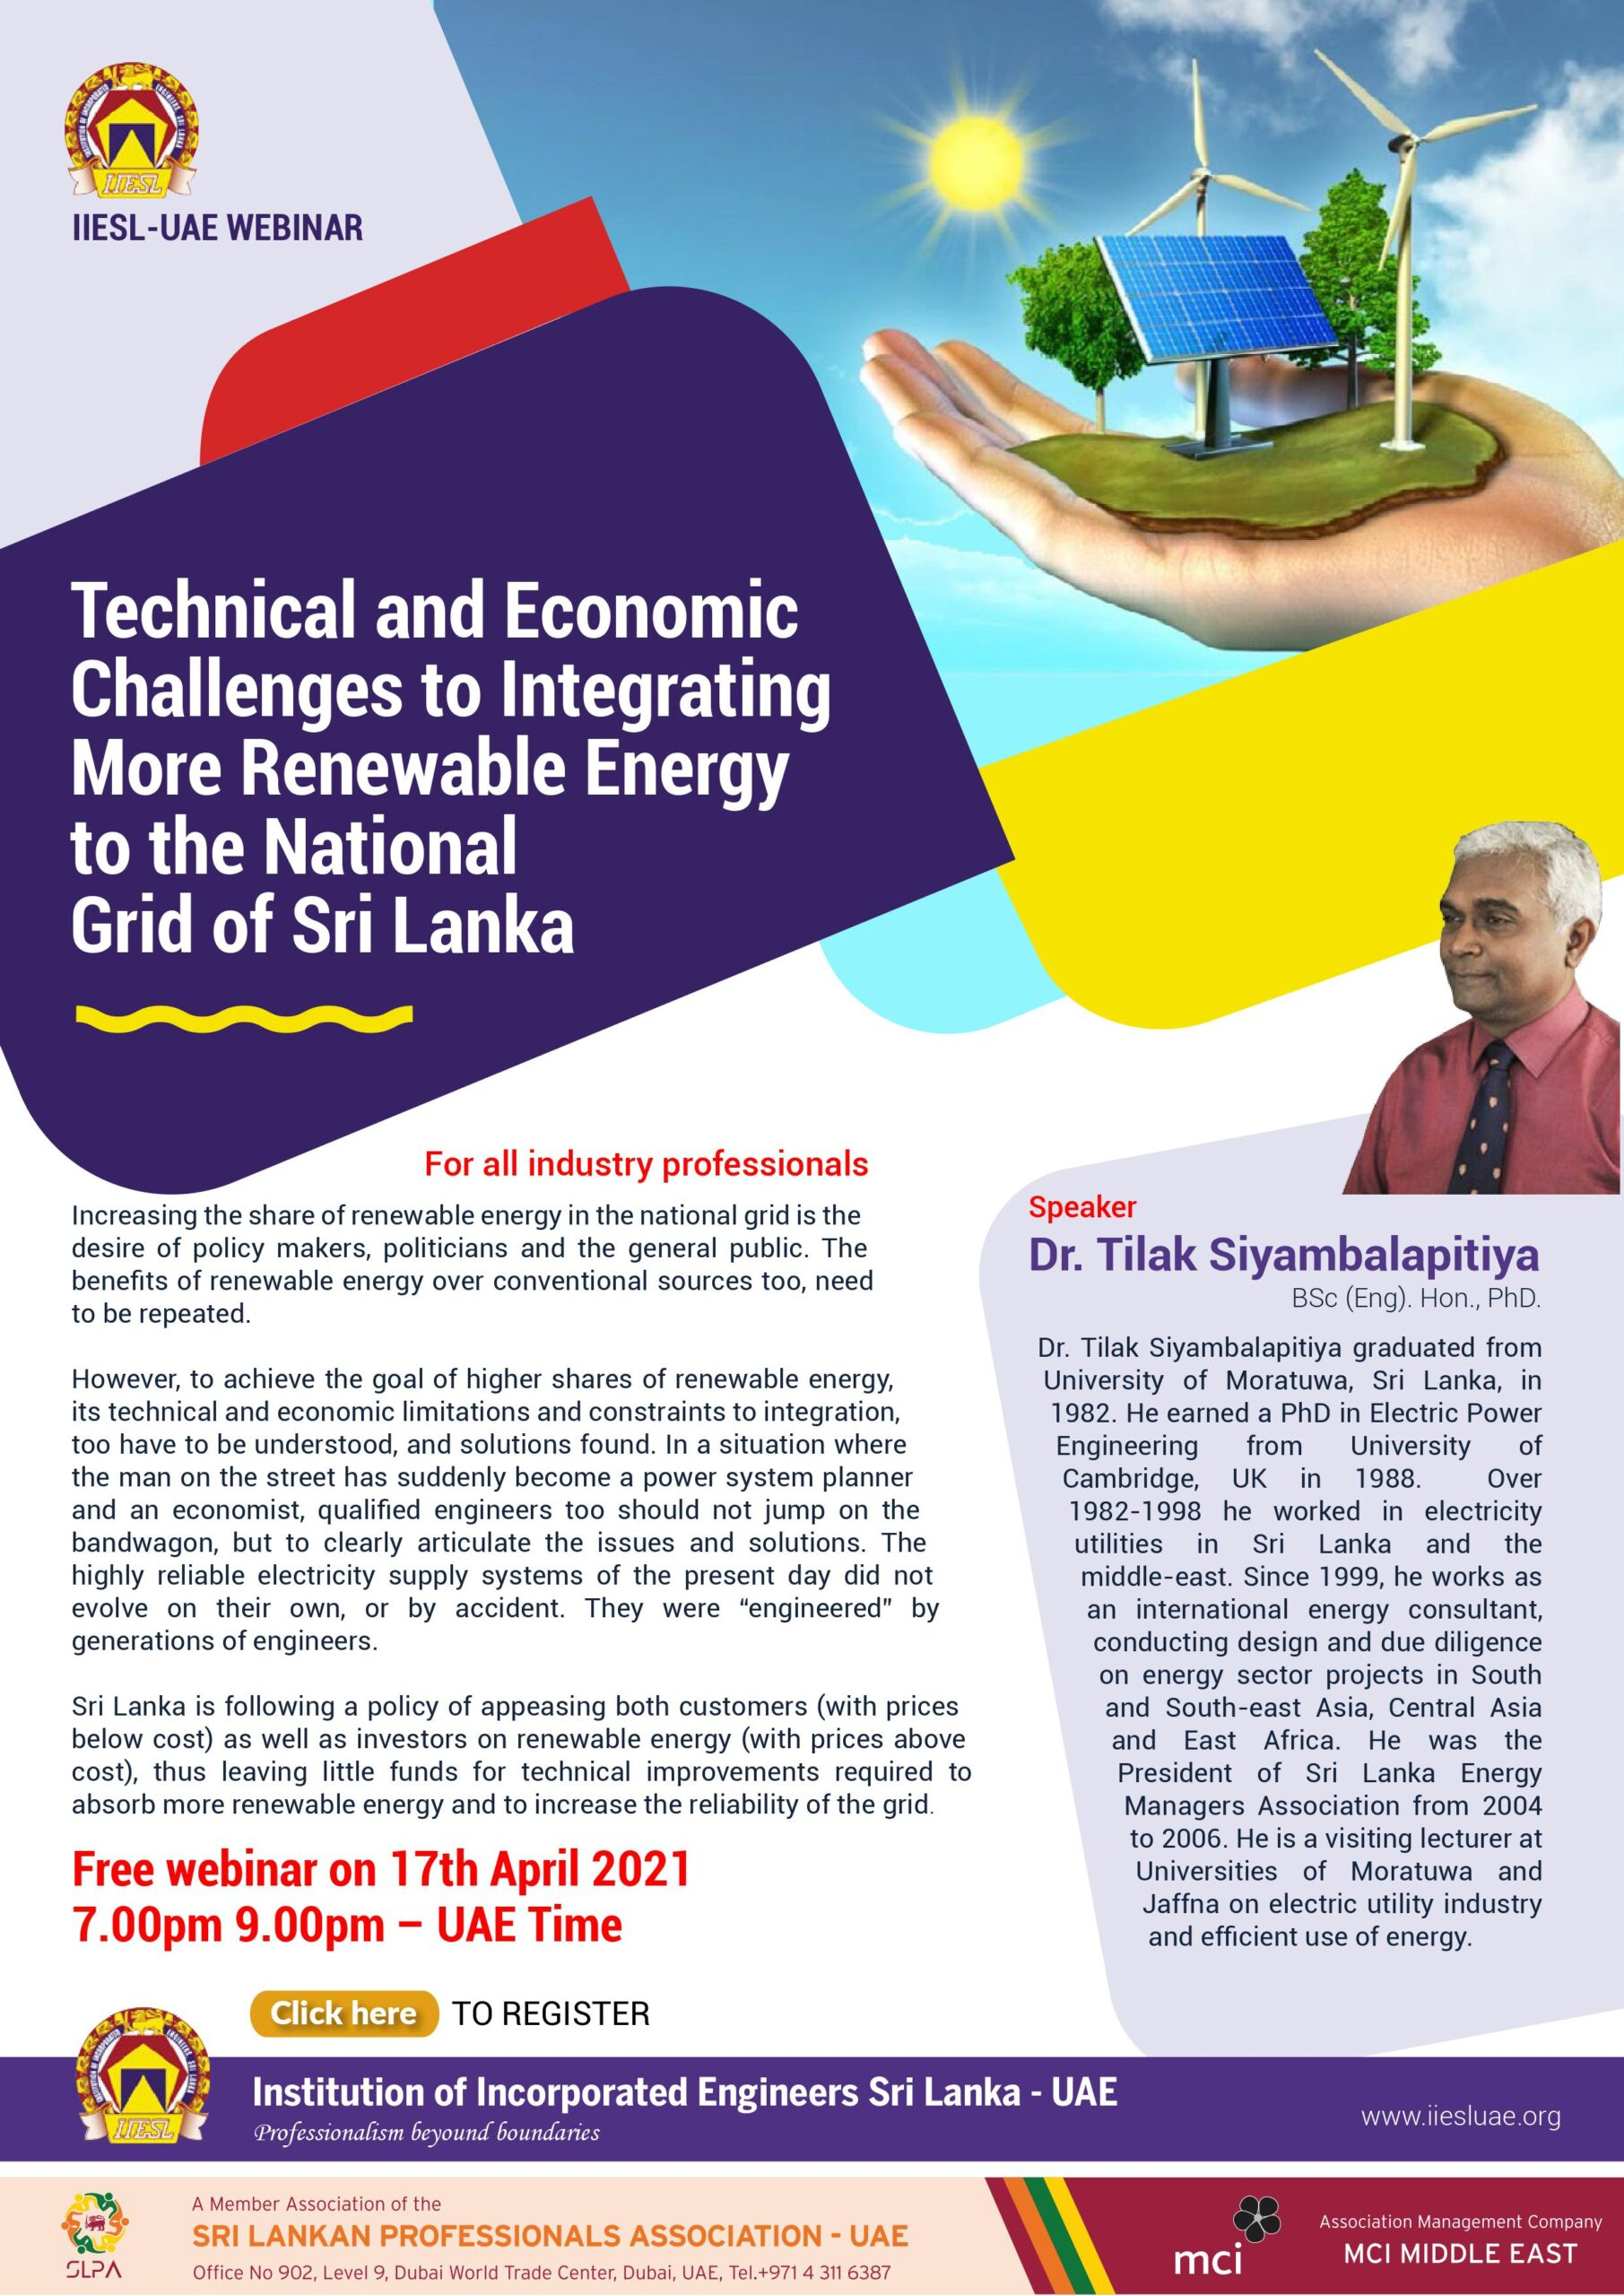 Technical and Economic Challenges to Integrate more Renewable Energy to National Grid of Sri Lanka by Dr. Tilak Siyambalapitiya, Energy Consultant